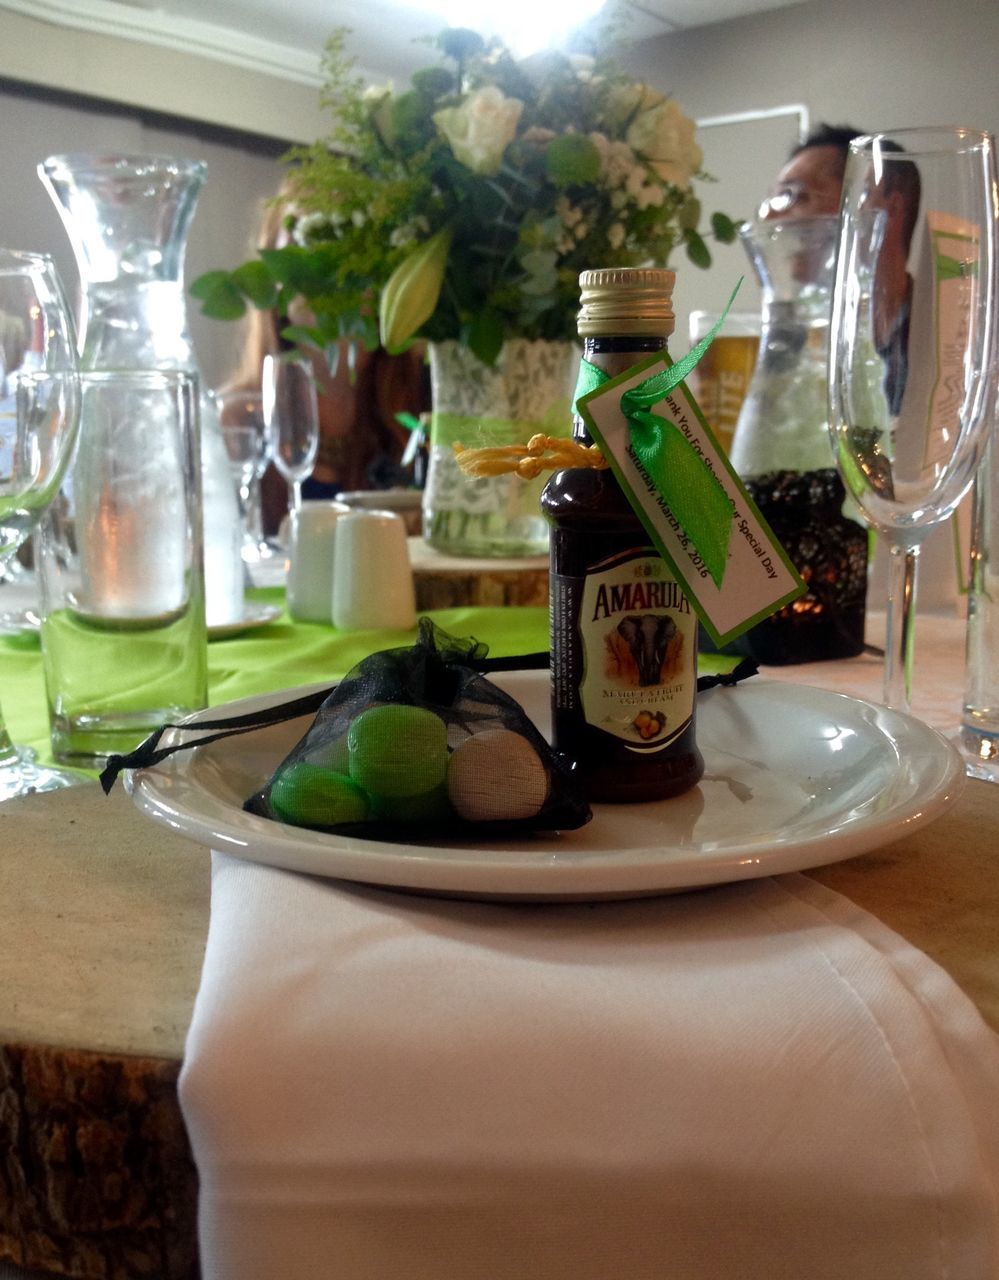 indoors, bottle, food and drink, no people, table, drink, food, close-up, freshness, day